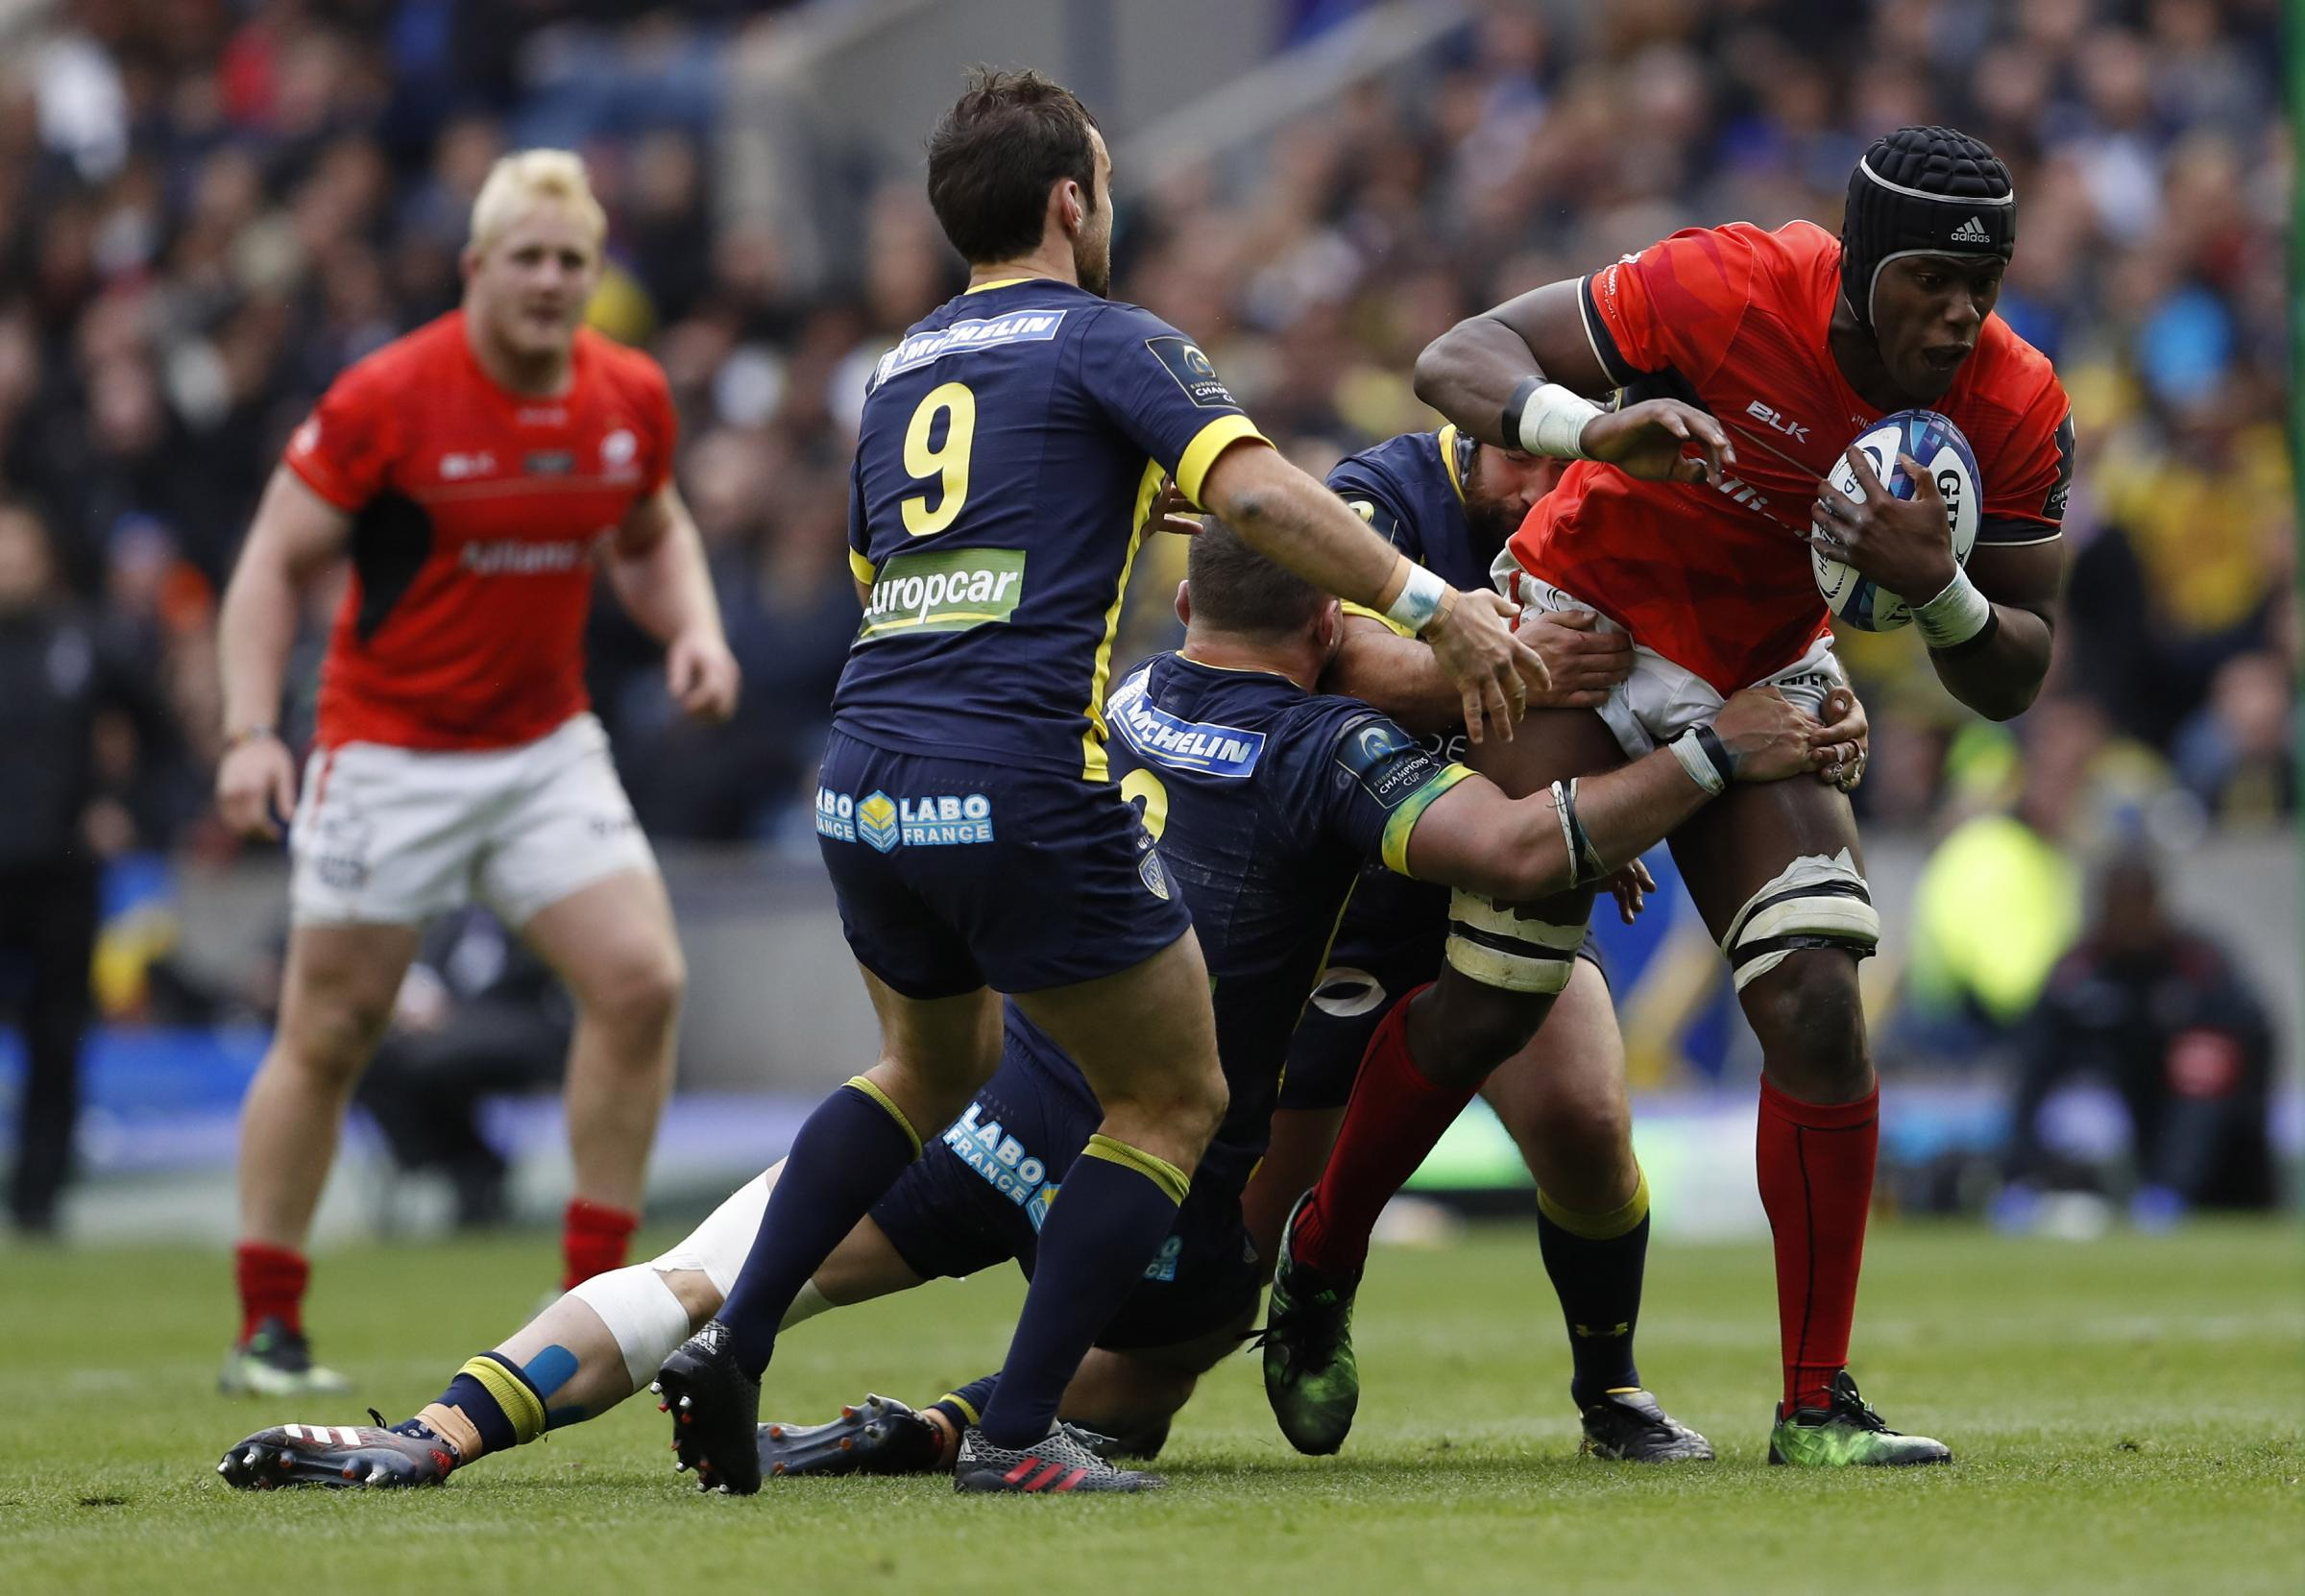 Clermont in action against Saracens in last season's Champions Cup final. Picture: Action Images